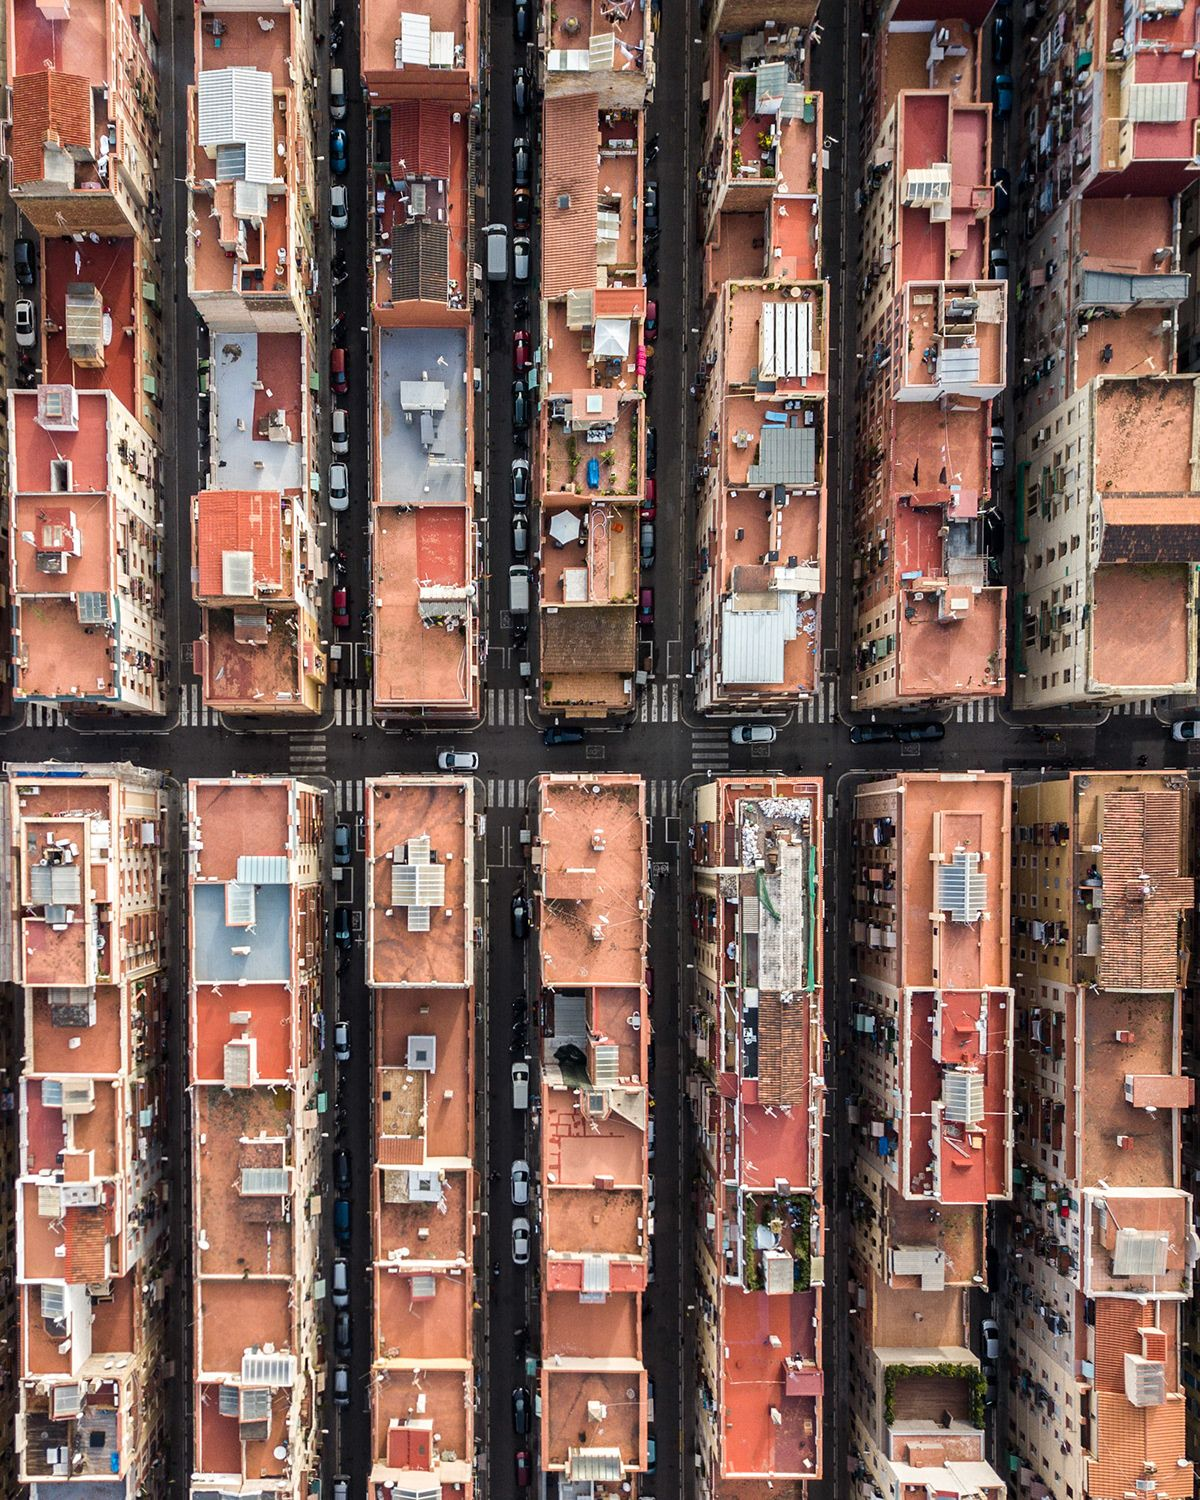 Aerial photographs of Barcelona reveal the geometric patterns of the coastal city